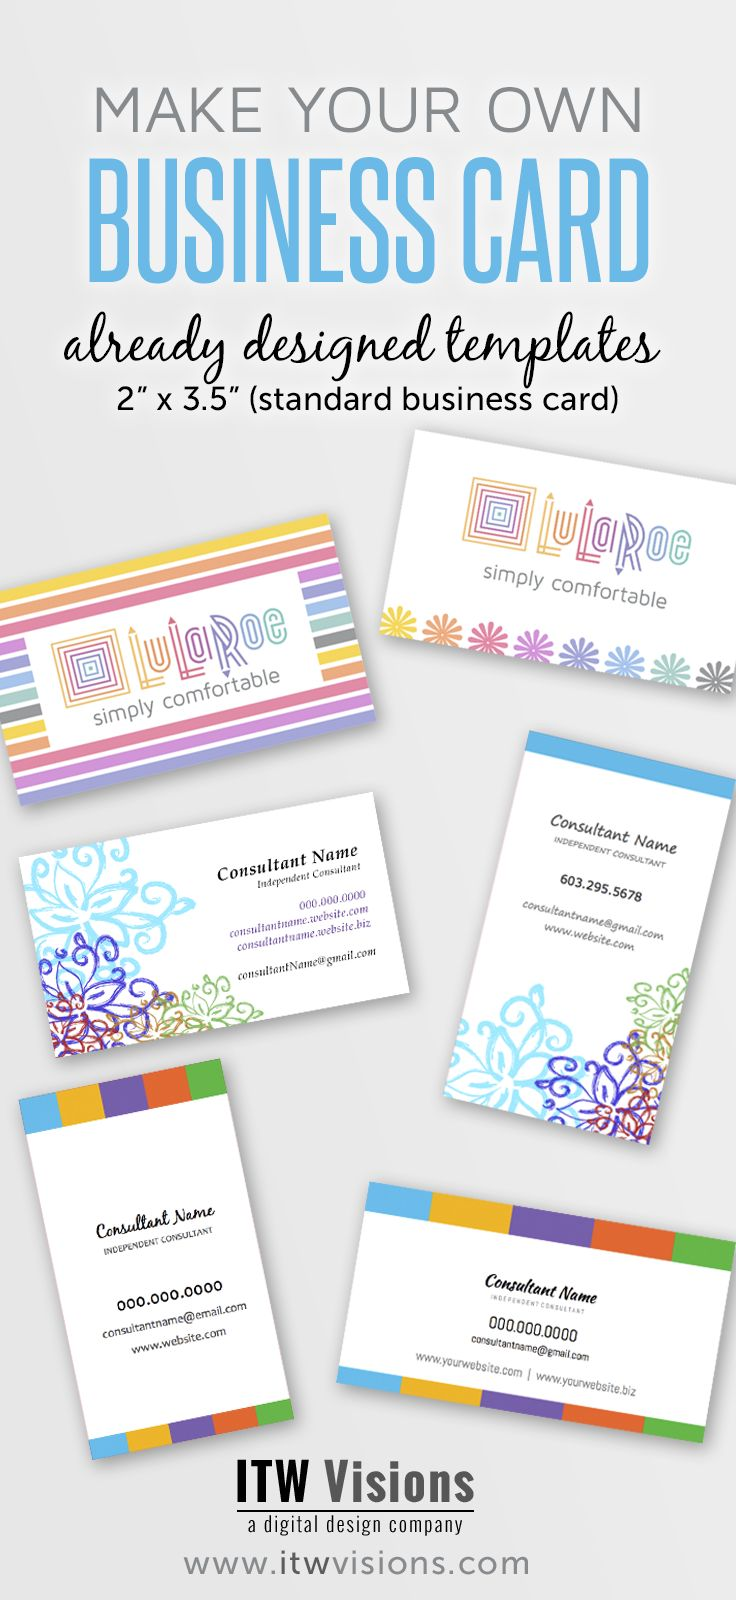 51 best images about lularoe marketing on pinterest for Make your own business cards free download